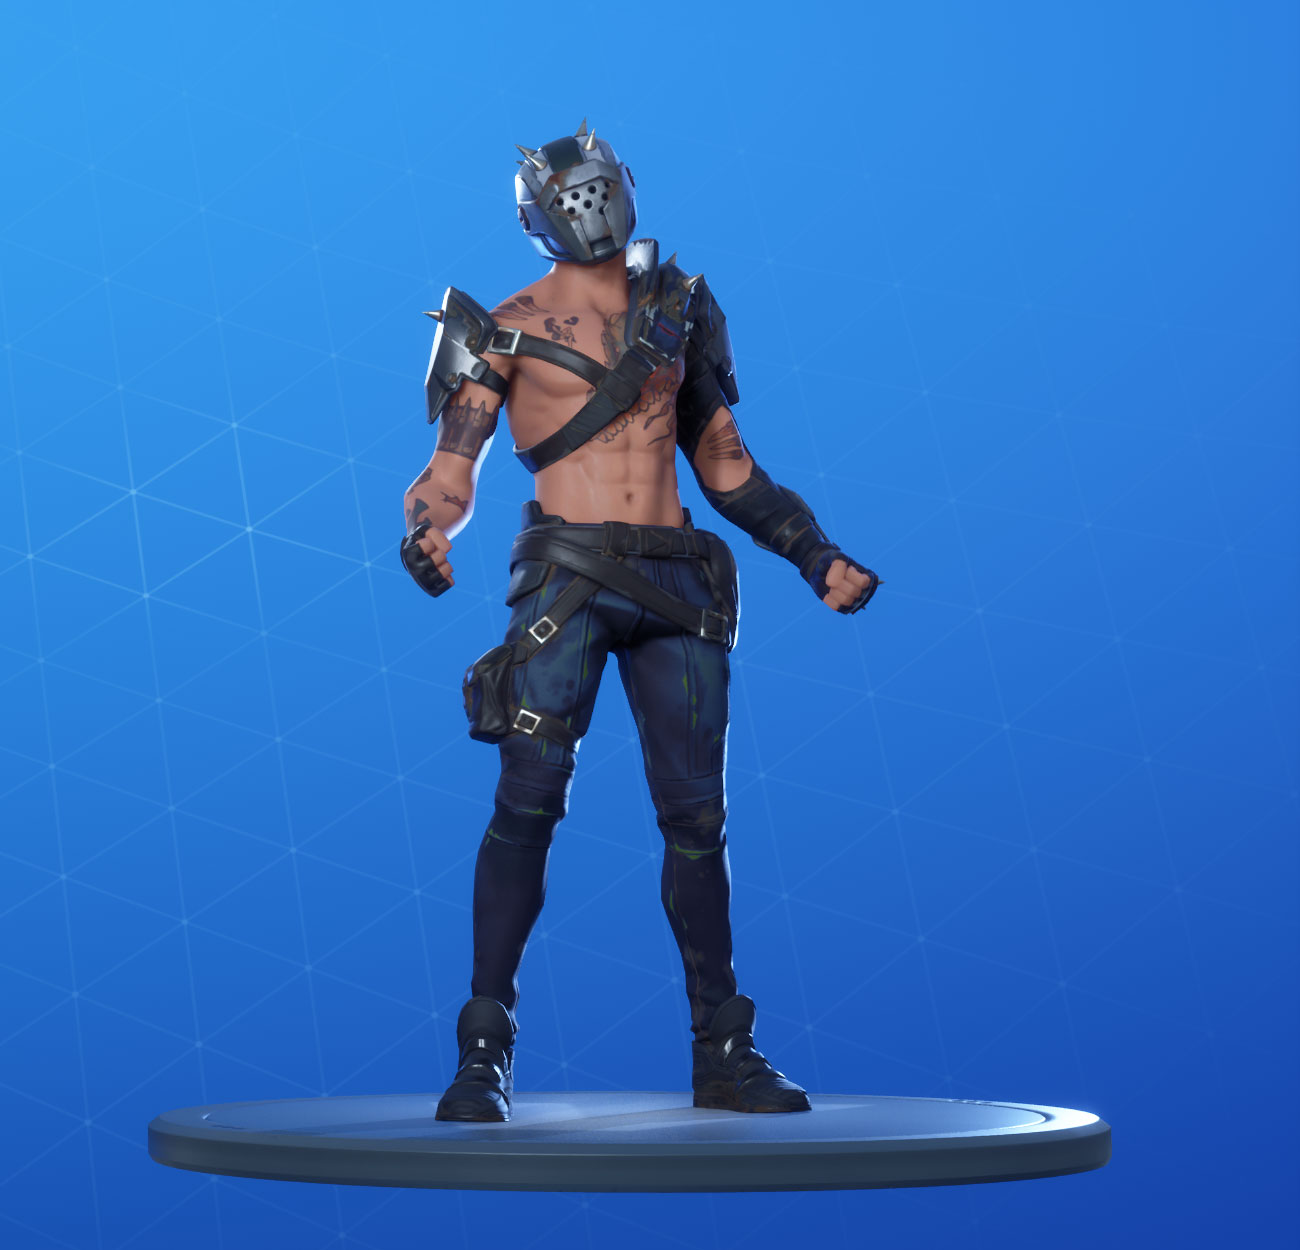 Fortnite X-Lord Skin - Outfit, PNGs, Images - Pro Game Guides